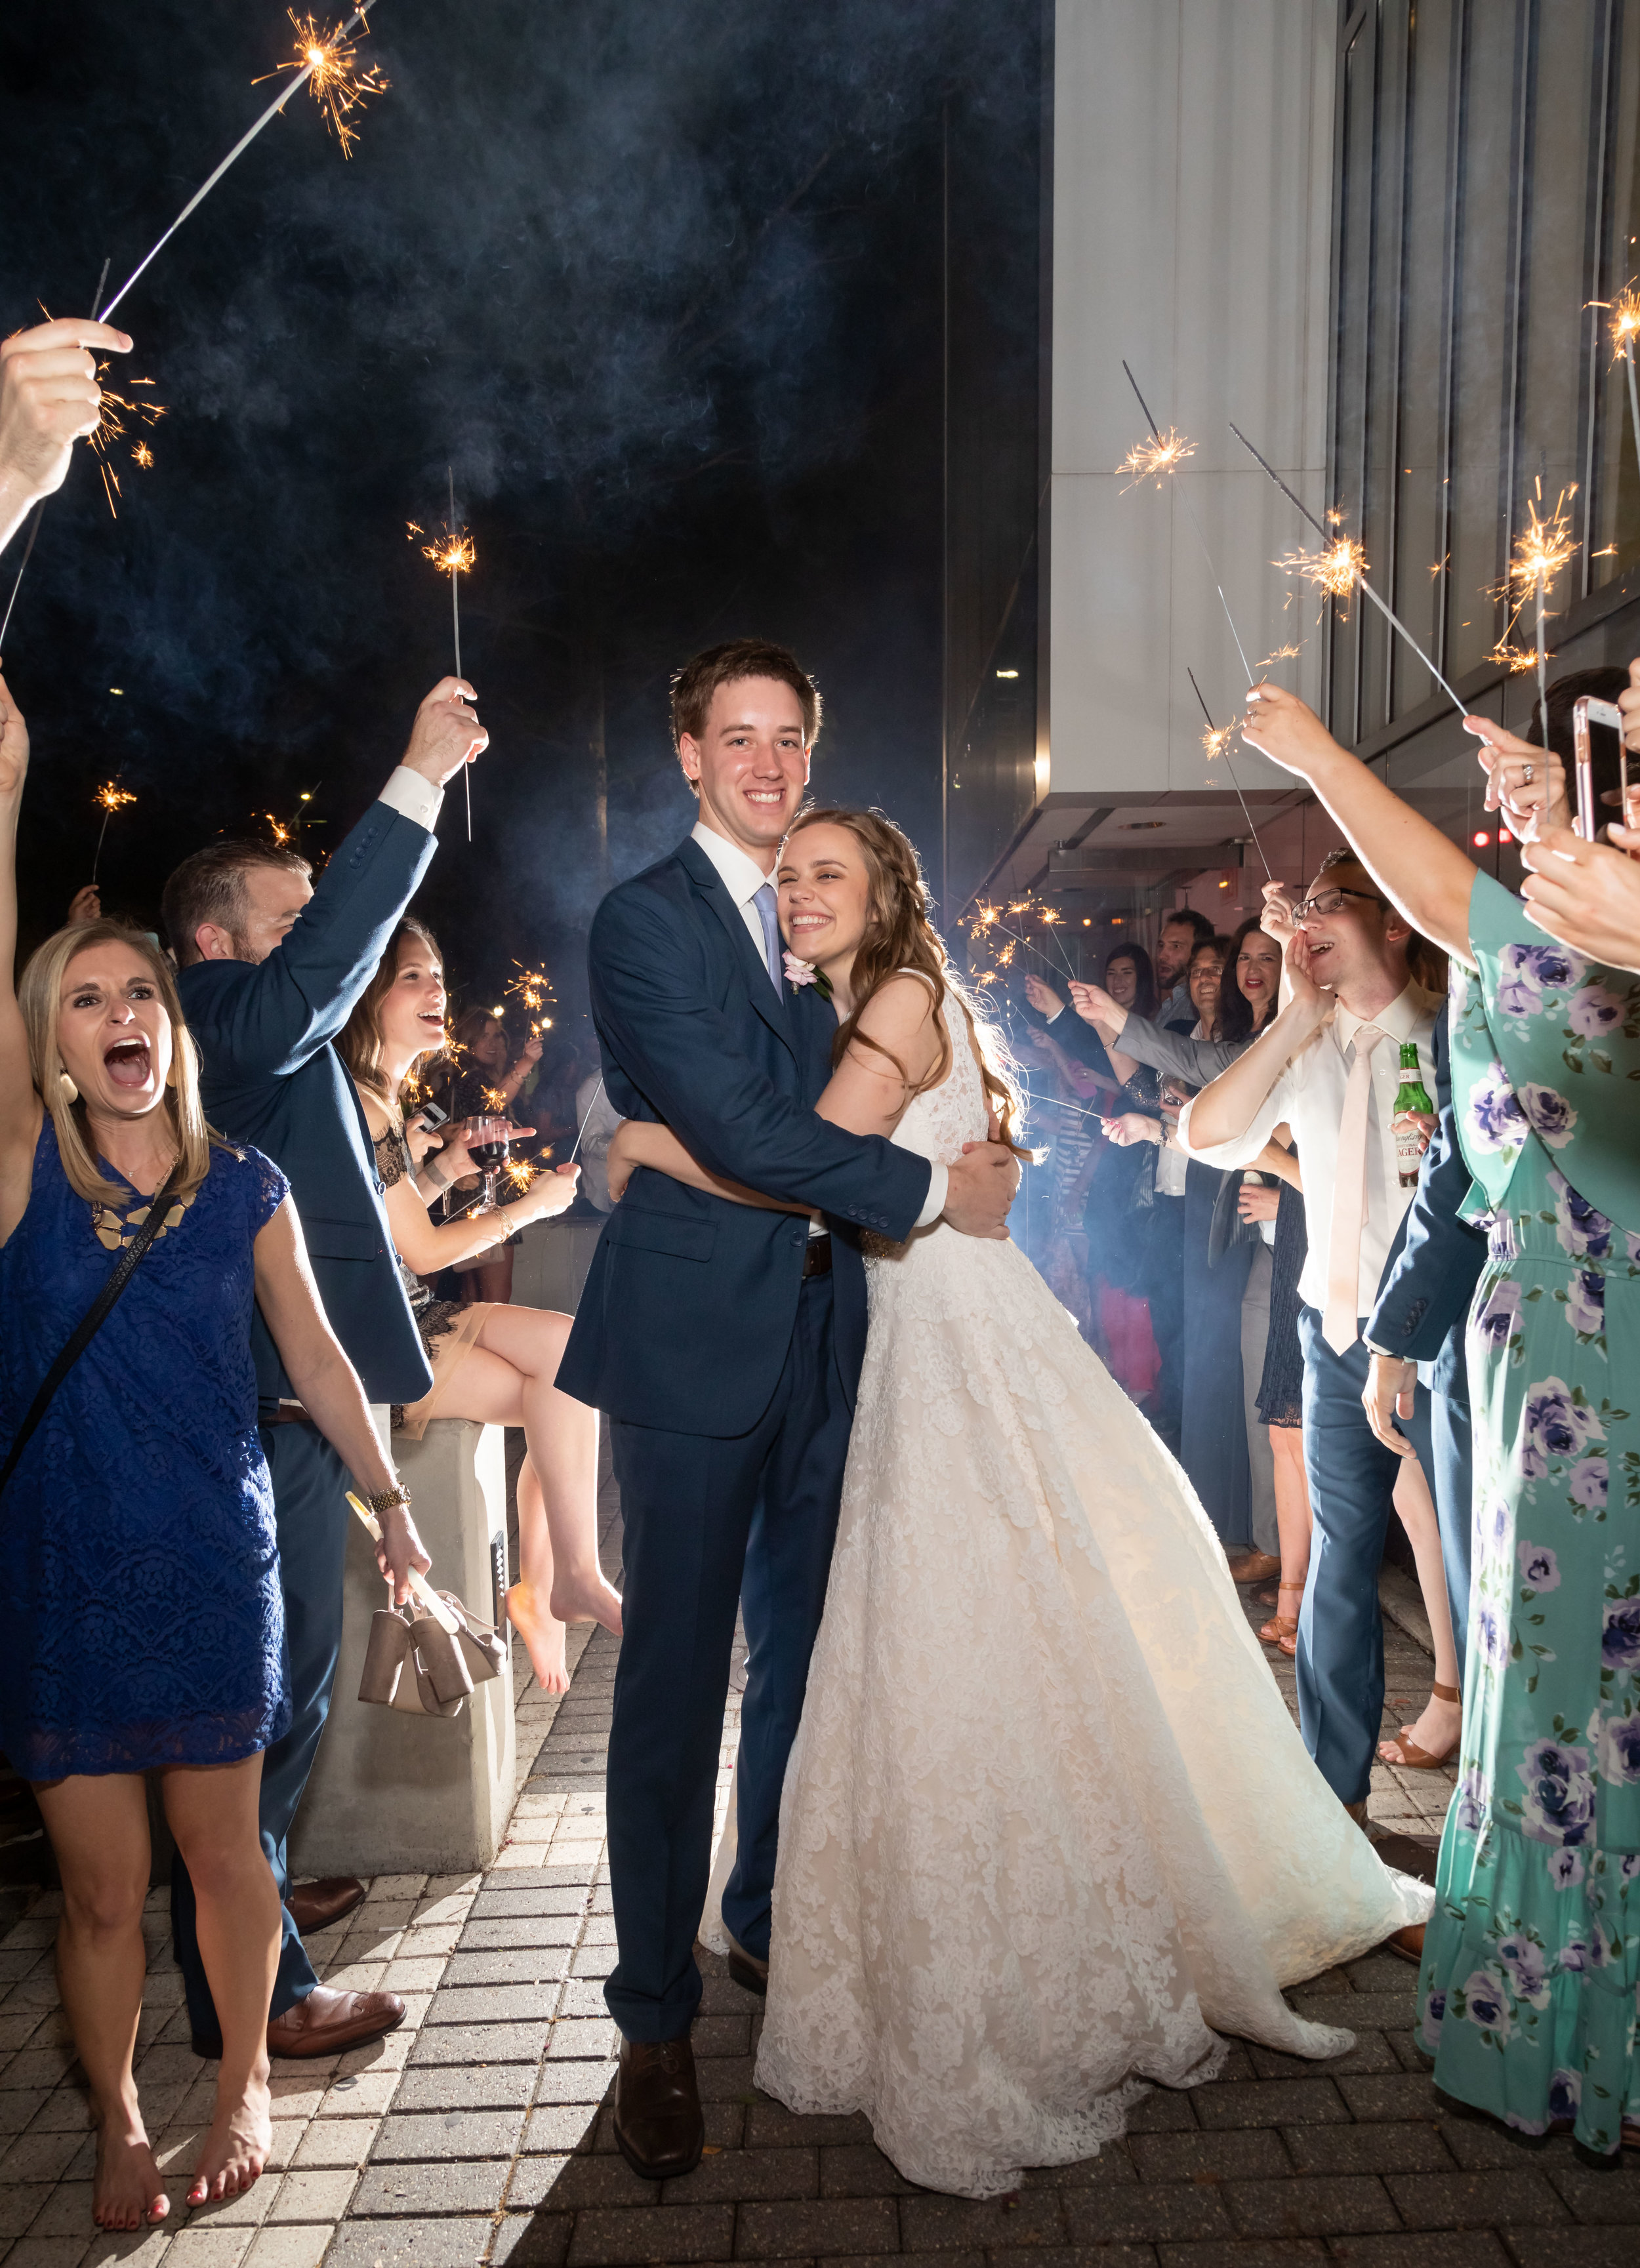 Southern Fete, Southern Wedding, Acadiana Center for the Arts, Sparkler Exit, Bride and Groom, Jay Faugot Photography